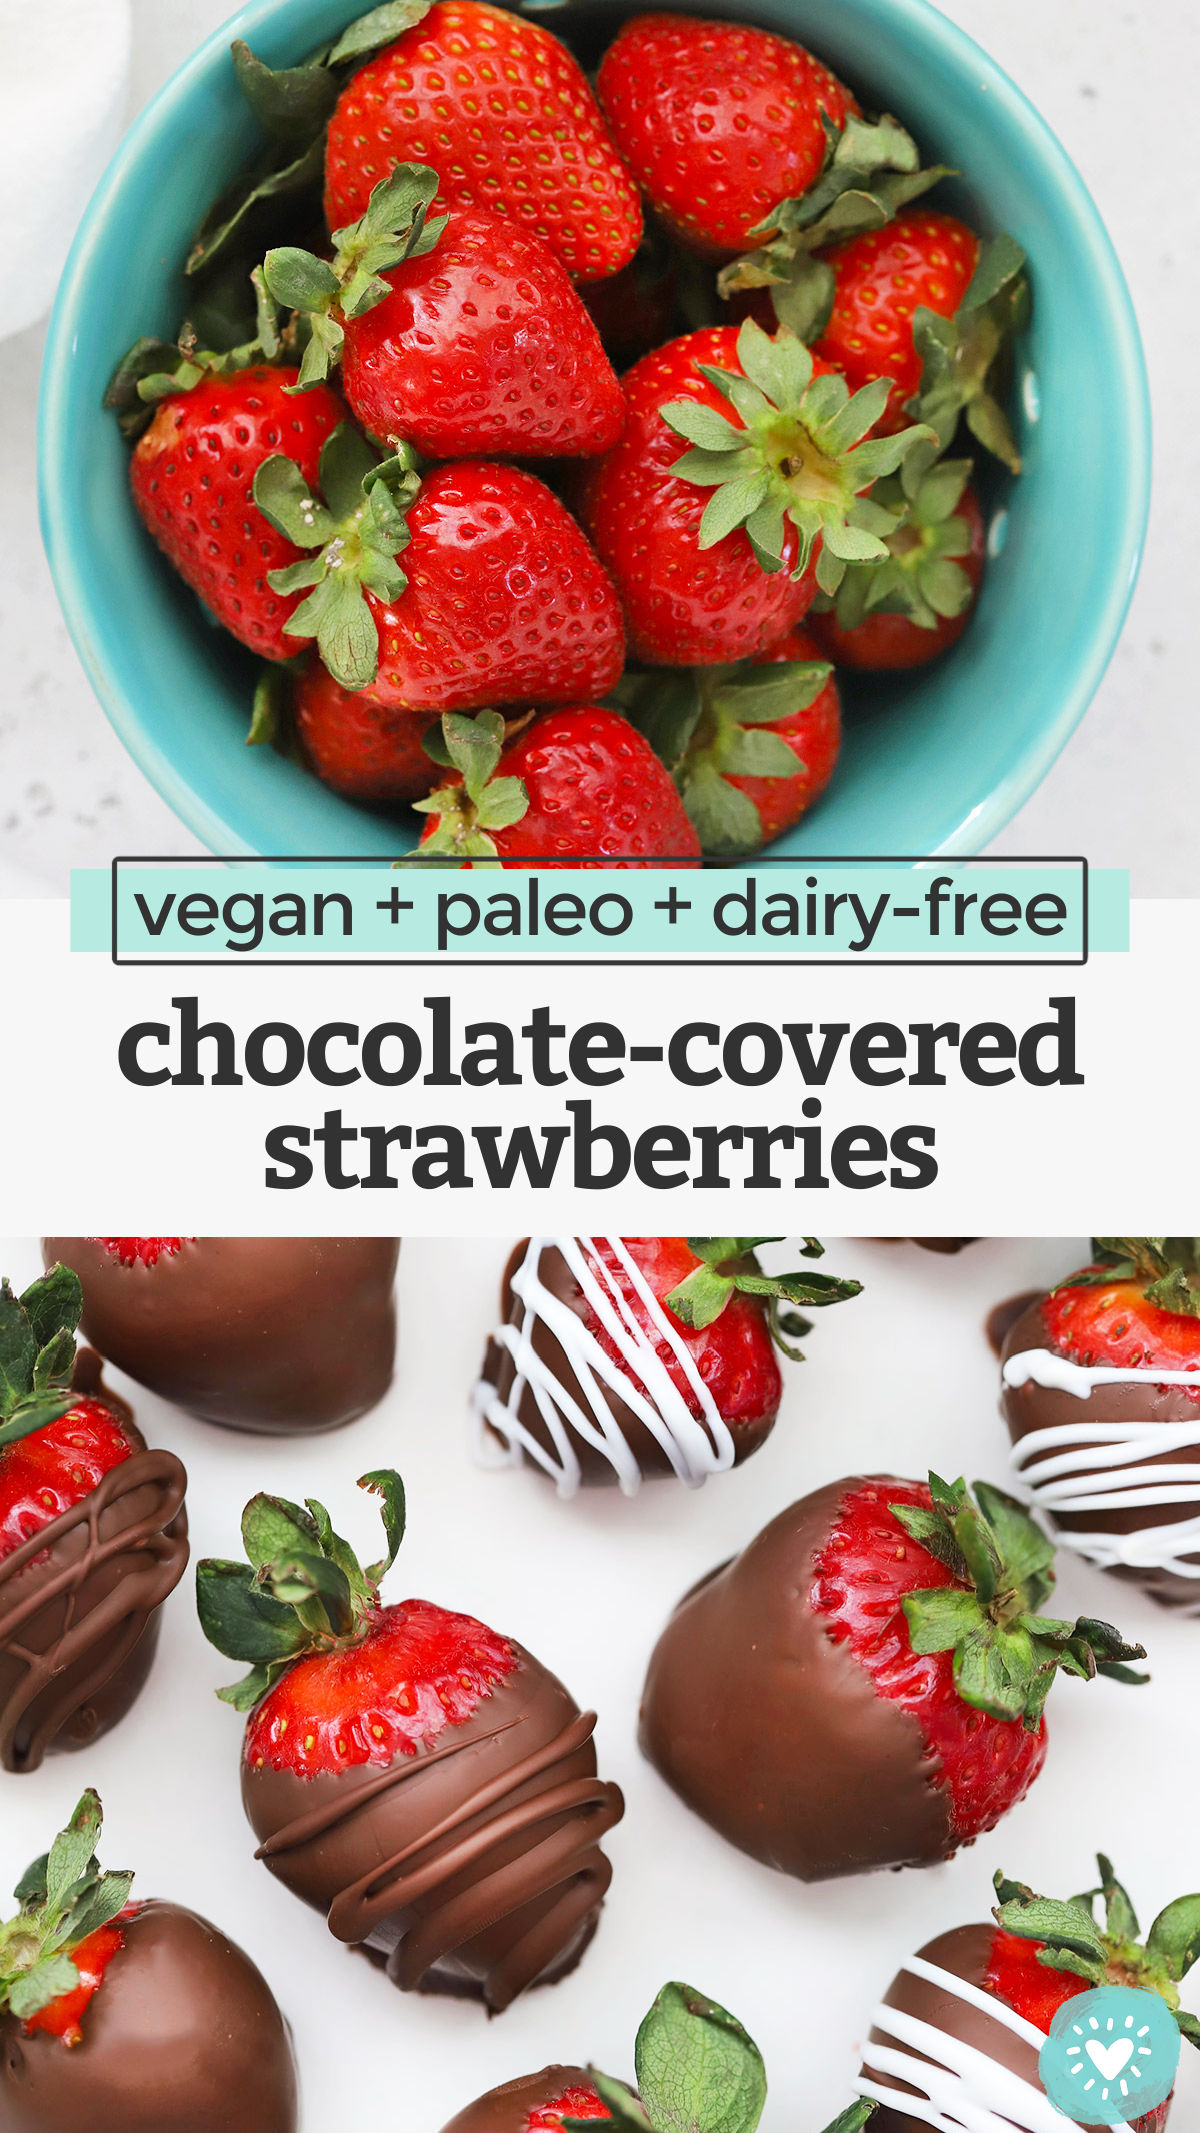 How to Make Chocolate Covered Strawberries - Here is everything you need to know to make this classic dessert! I'll even show you how to make them dairy-free, vegan, and paleo-approved! // Paleo Chocolate covered strawberries // dairy-free chocolate-covered strawberries // vegan chocolate covered strawberries // valentines day dessert #glutenfree #paleo #vegan #dairyfree #chocolatecoveredstrawberries